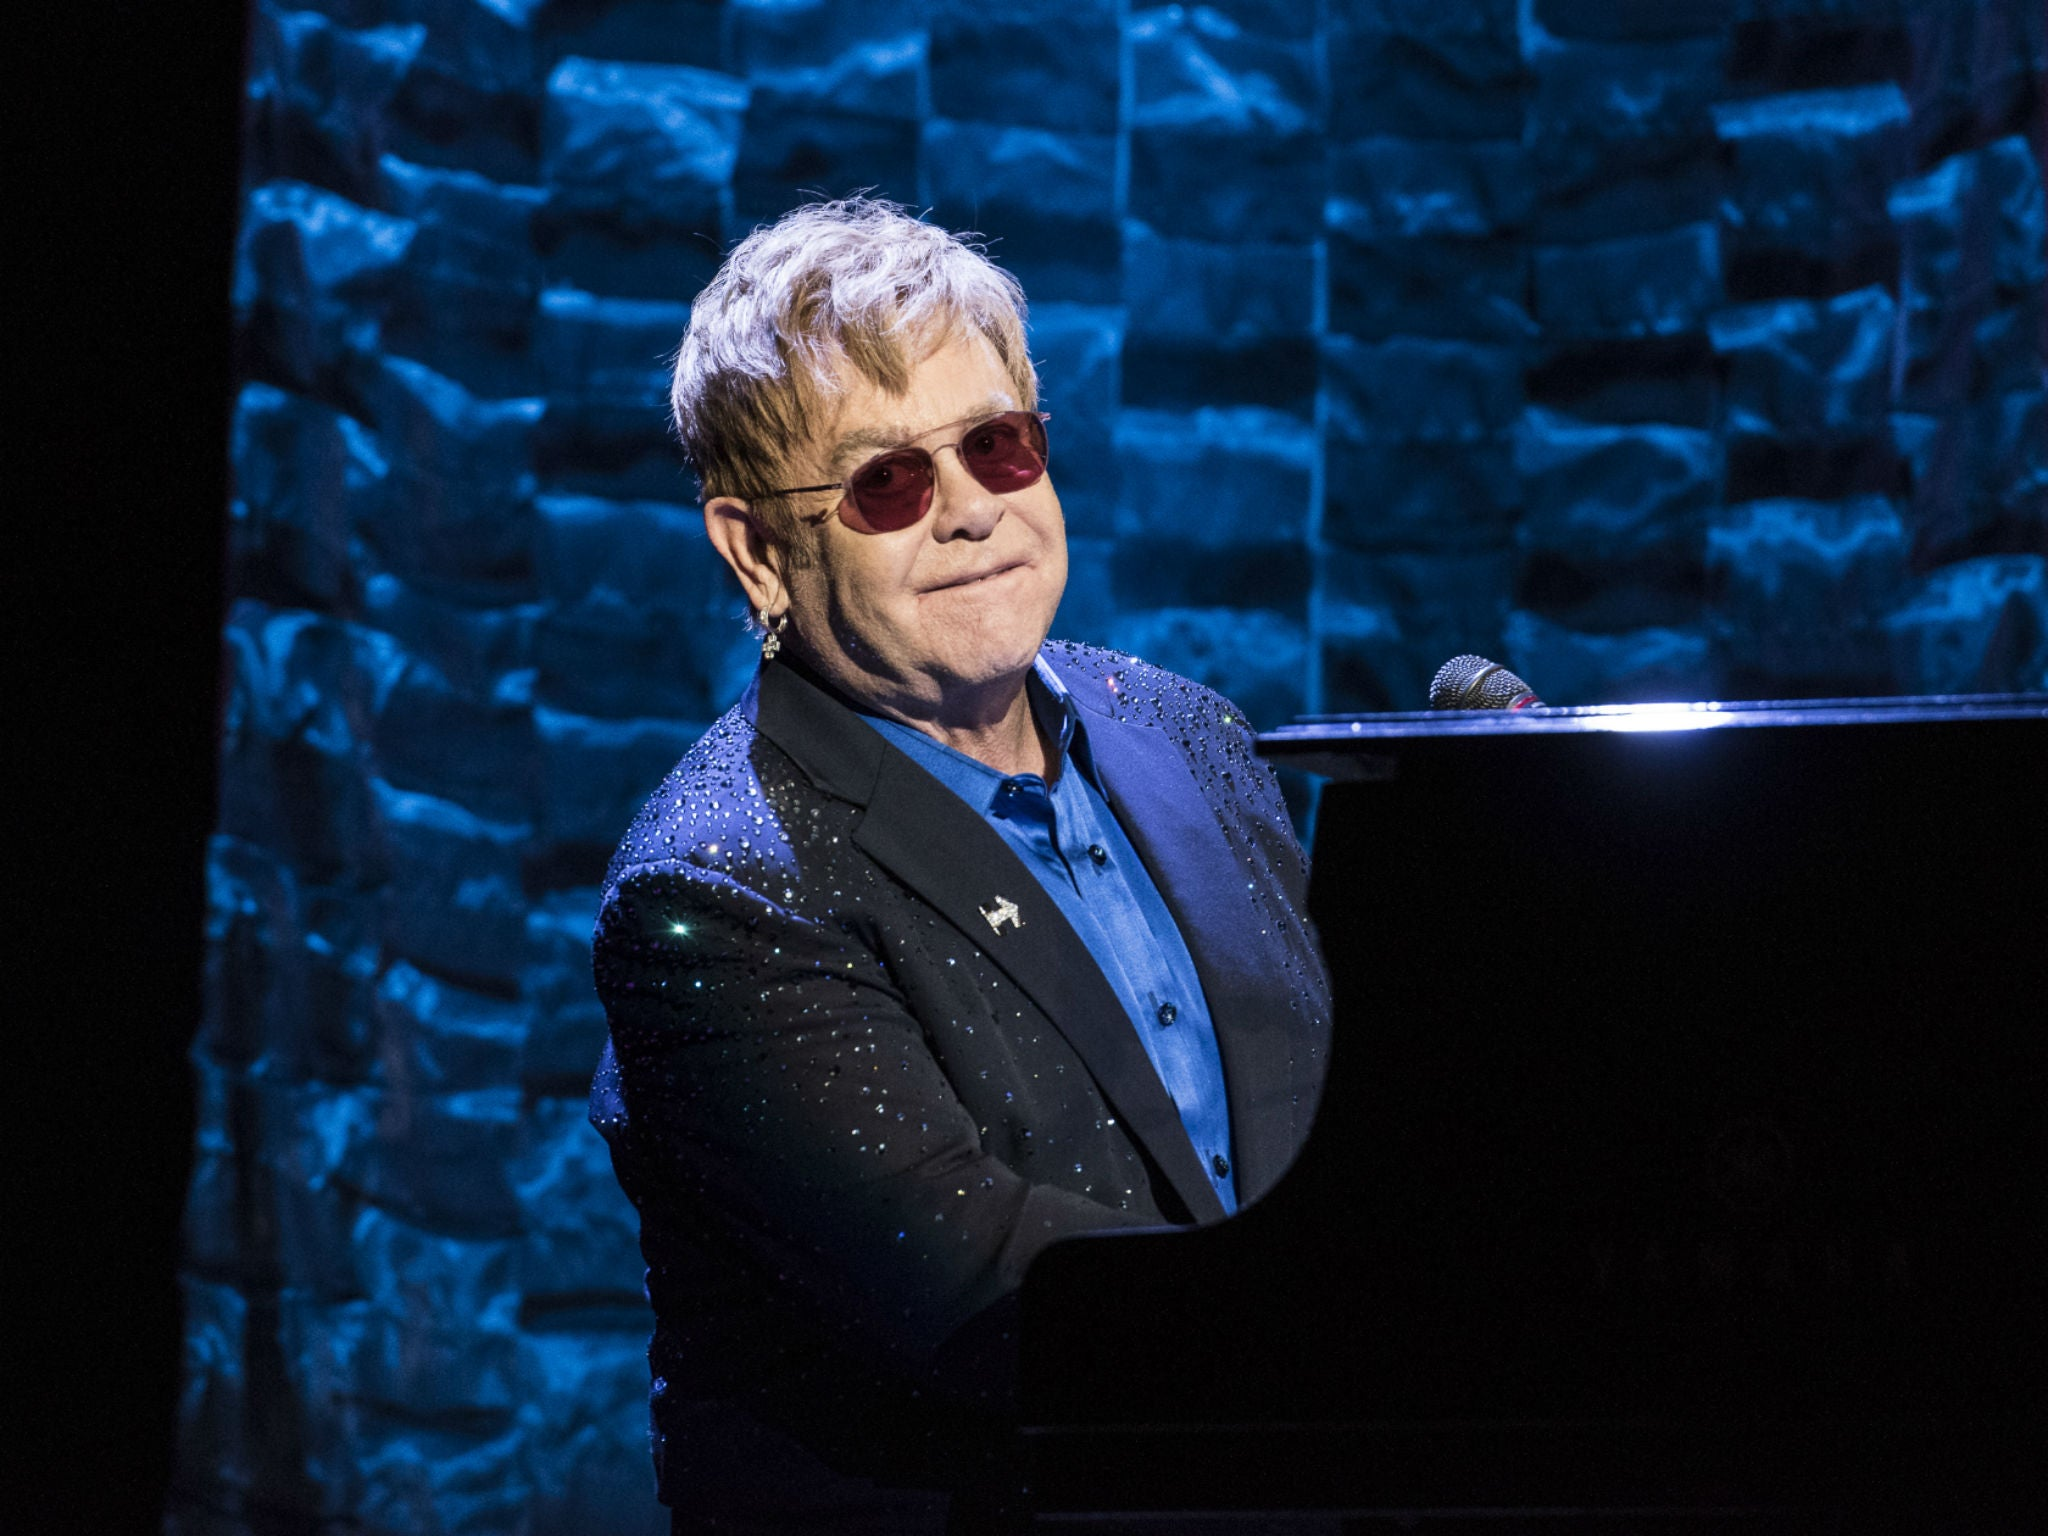 elton gay singles I'm still standing is a song by british rock musician elton john, from his platinum-certified 1983 album, too low for zero john said this was my reaction to still being relevant and.